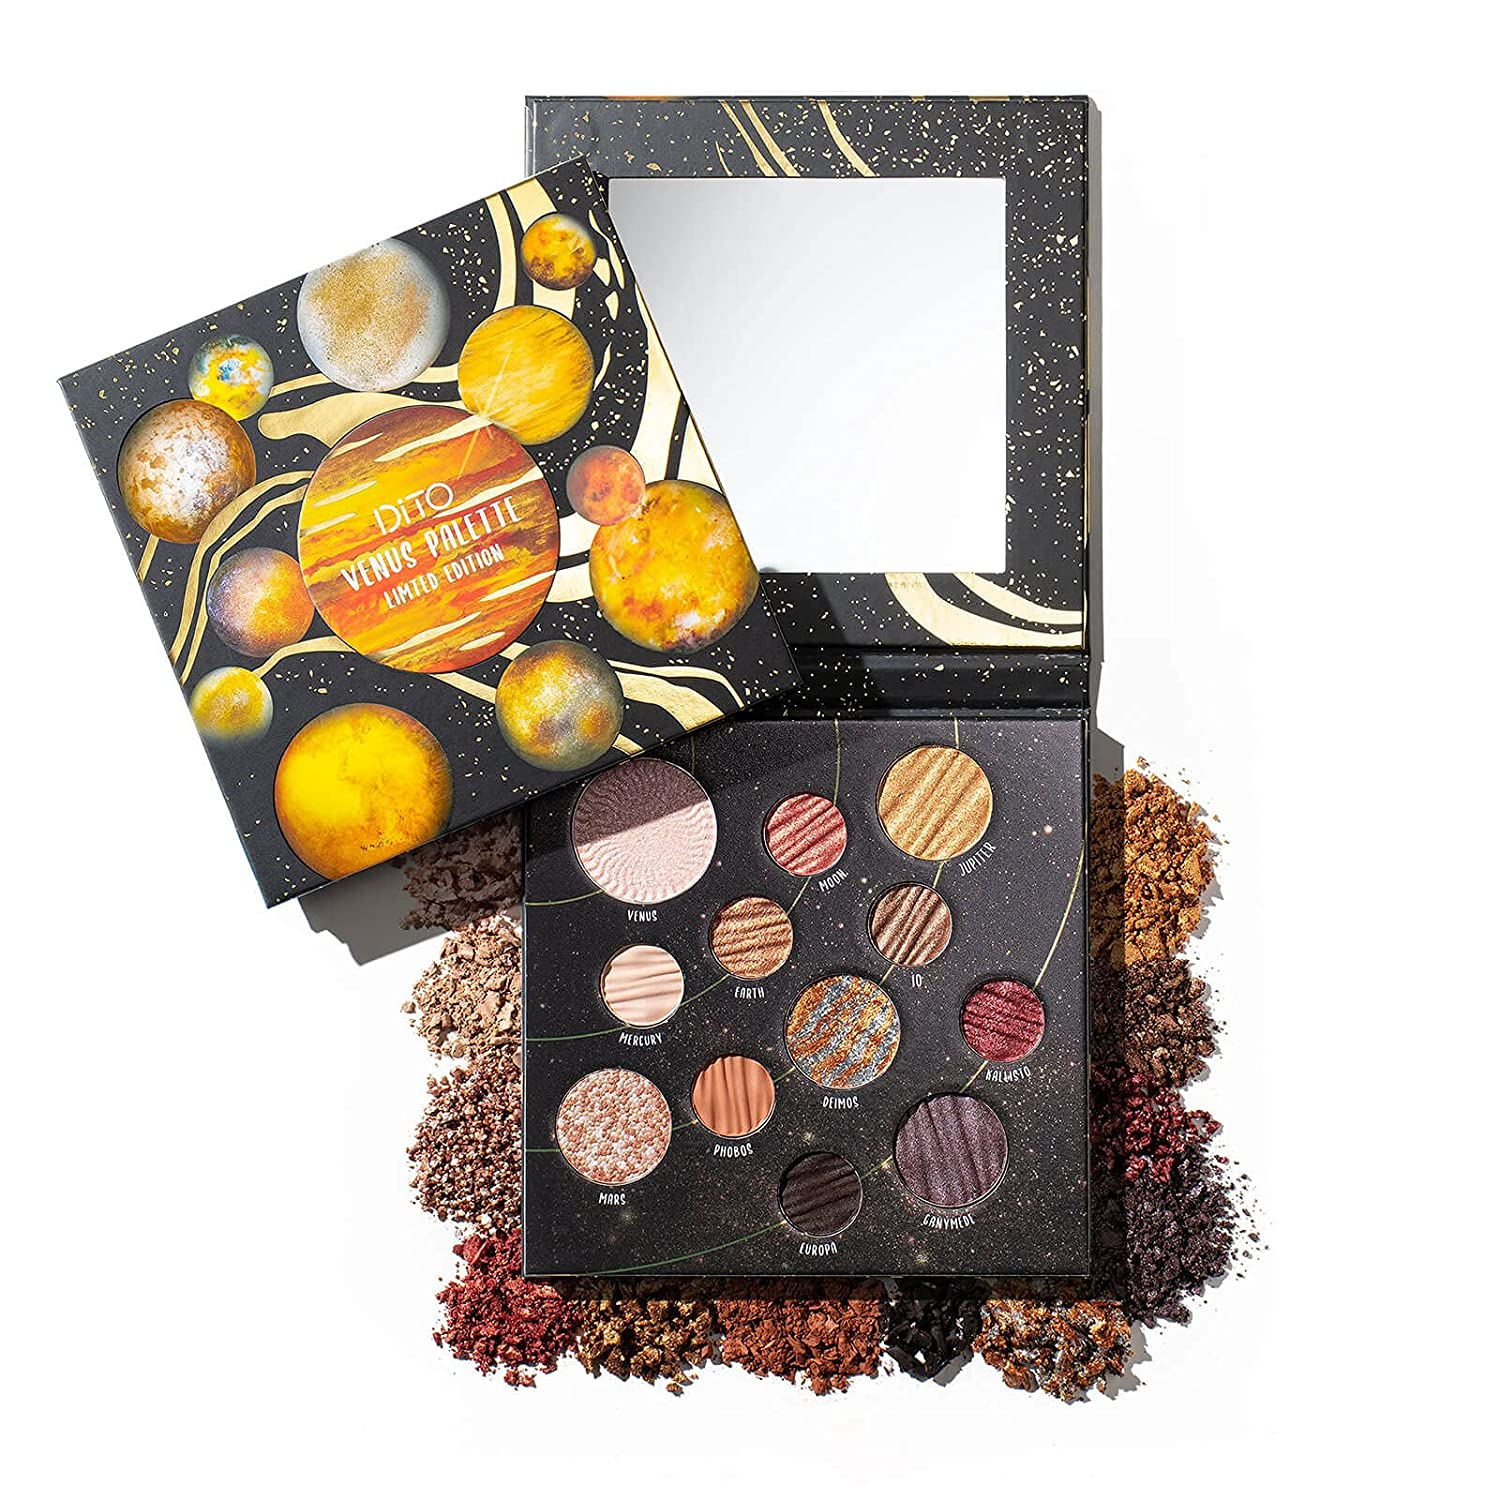 DiTO 12 Color Venus Makeup Palette Highly Pigmented Louisville-Jefferson County Mall Eyeshadow Max 89% OFF P